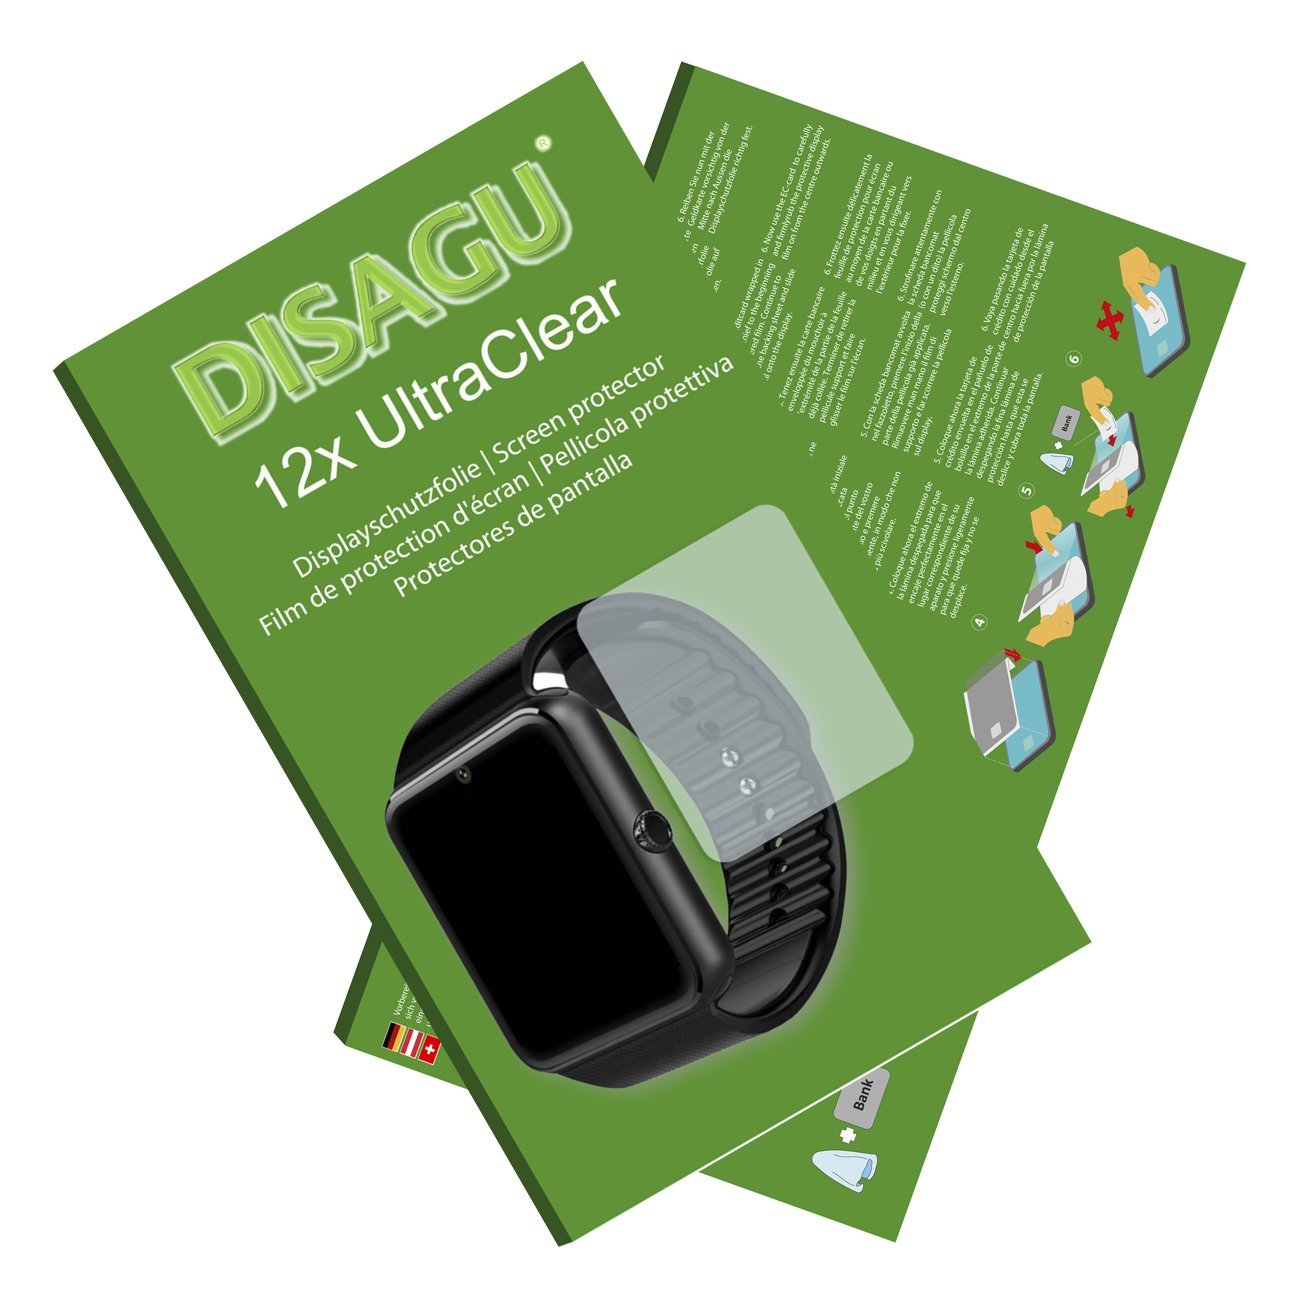 "DISAGU 12x Ultra Clear Screen Protector for LaTEC 1.54"" Bluetooth Smart Watch (intentionally smaller than the display due to its curved surface)"